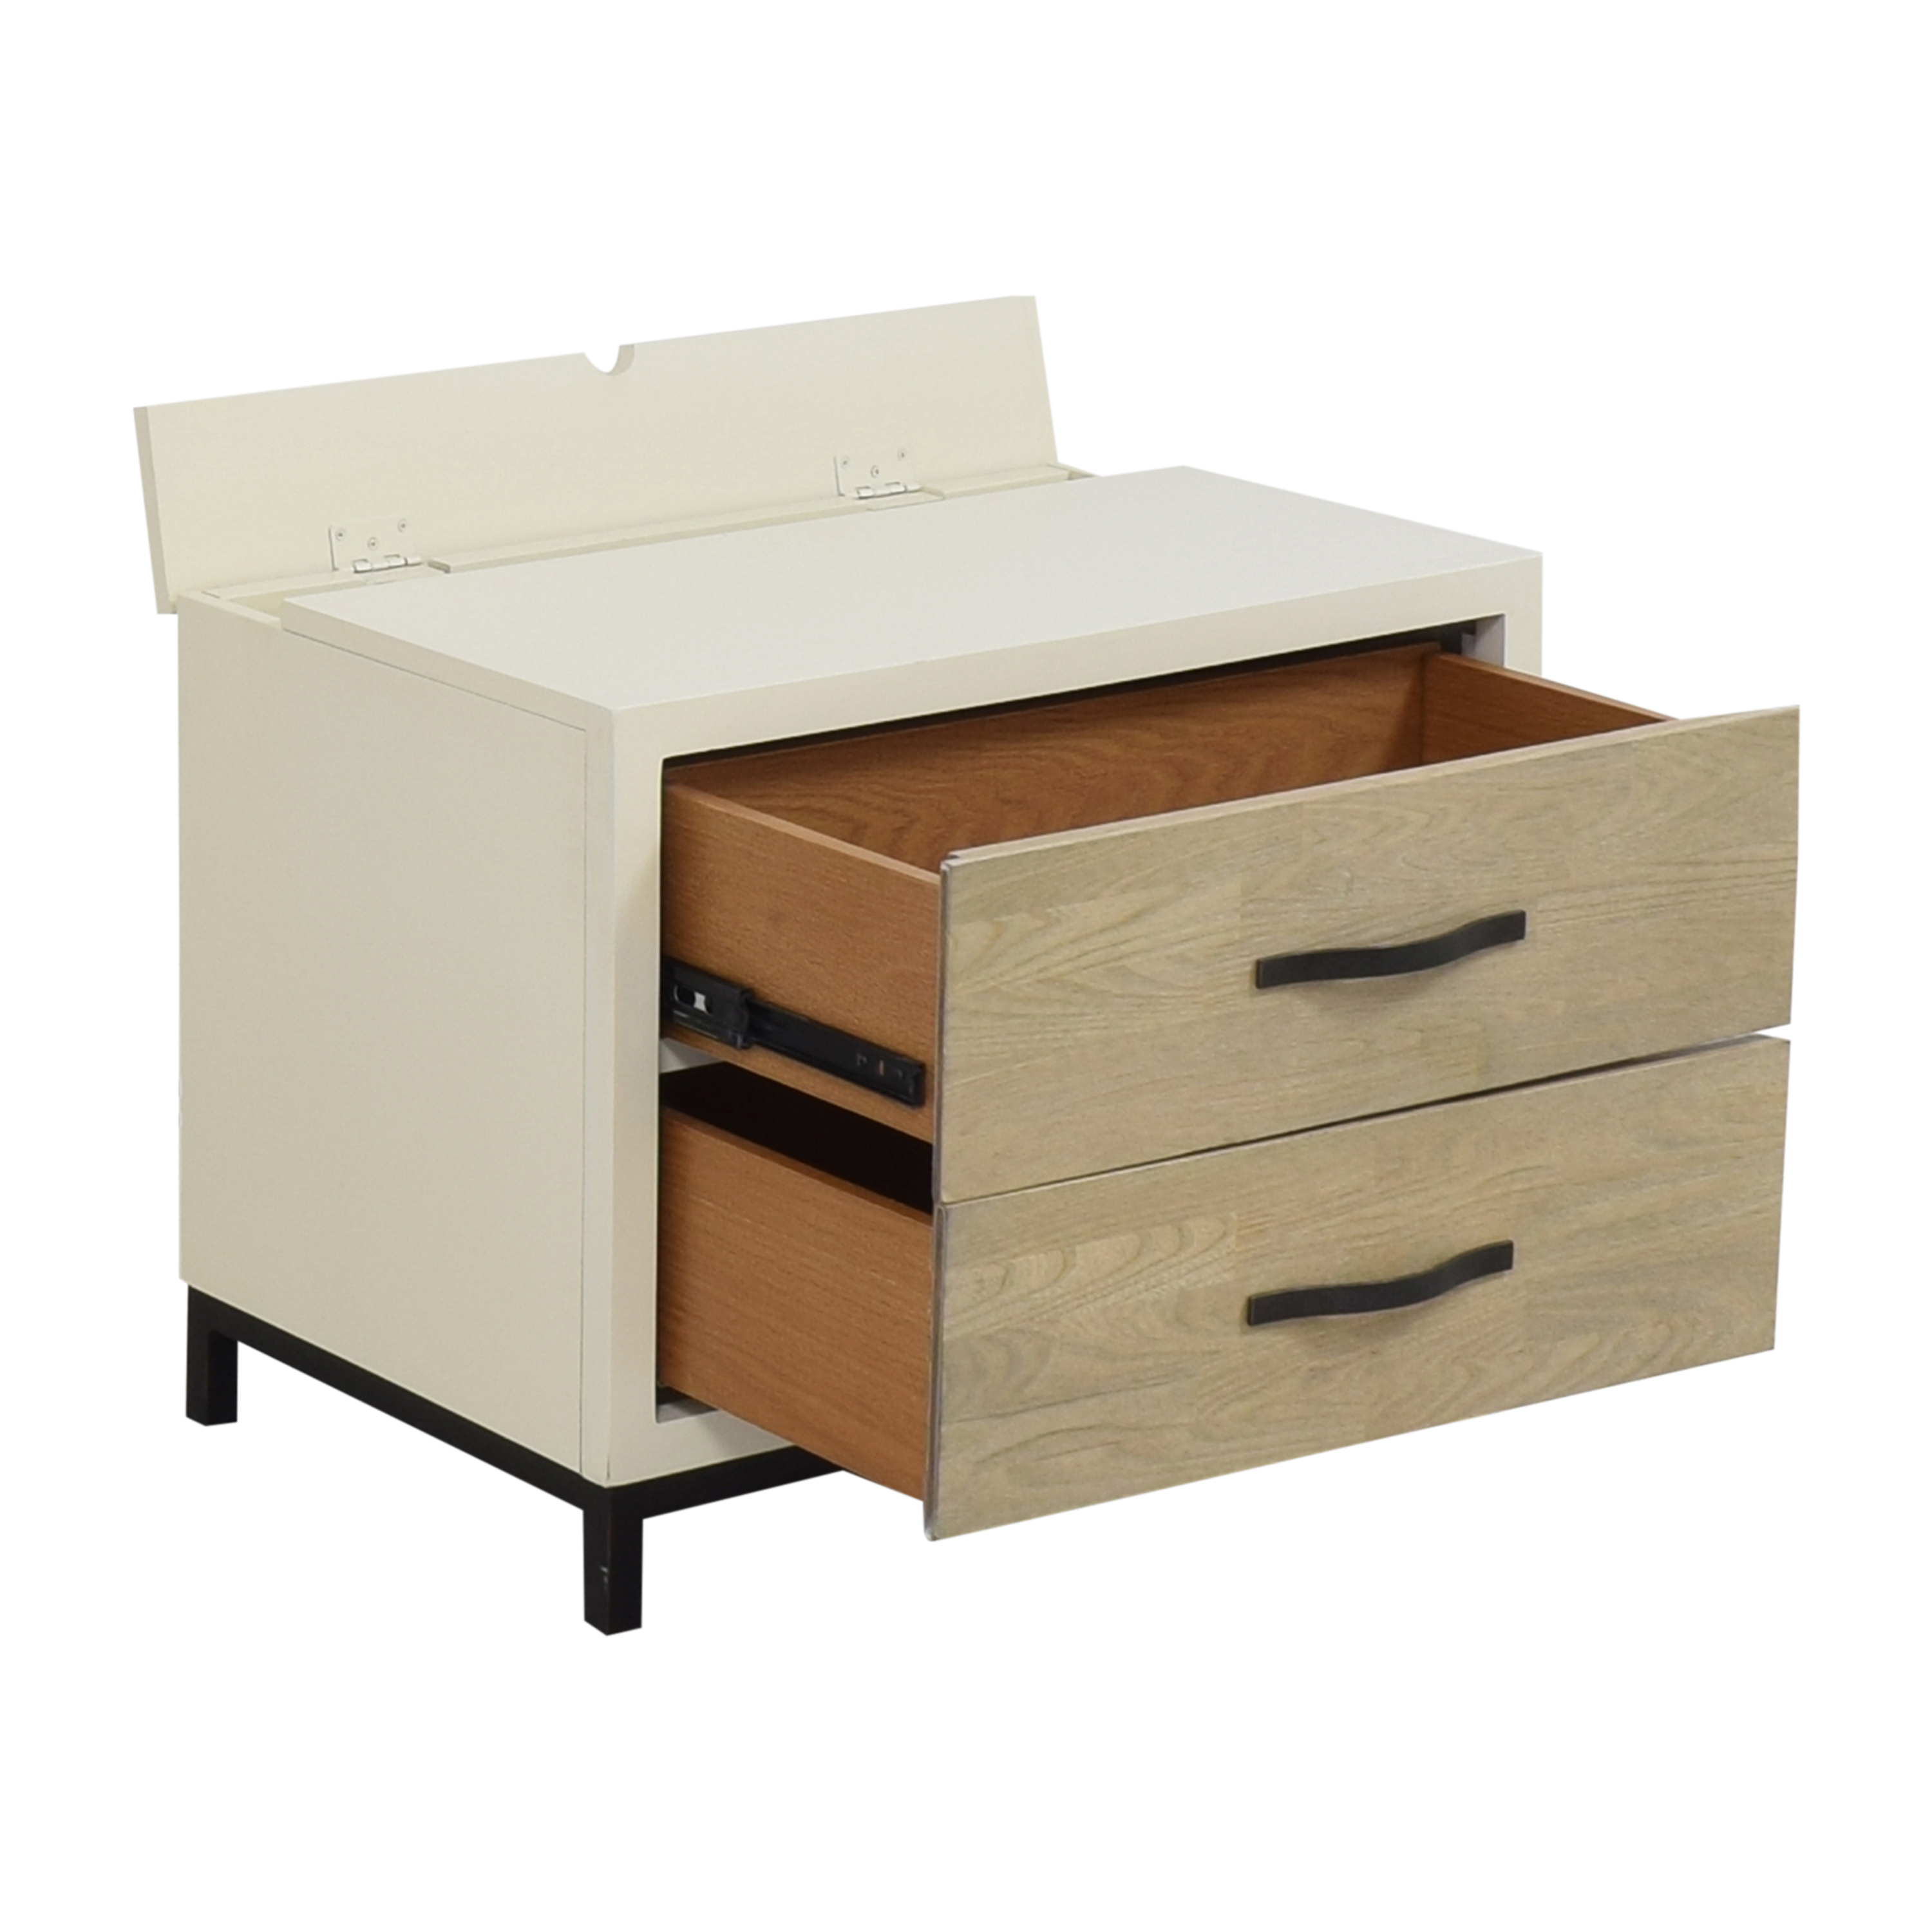 Universal Furniture Universal Furniture Spencer Nightstand with Power Outlet  ct